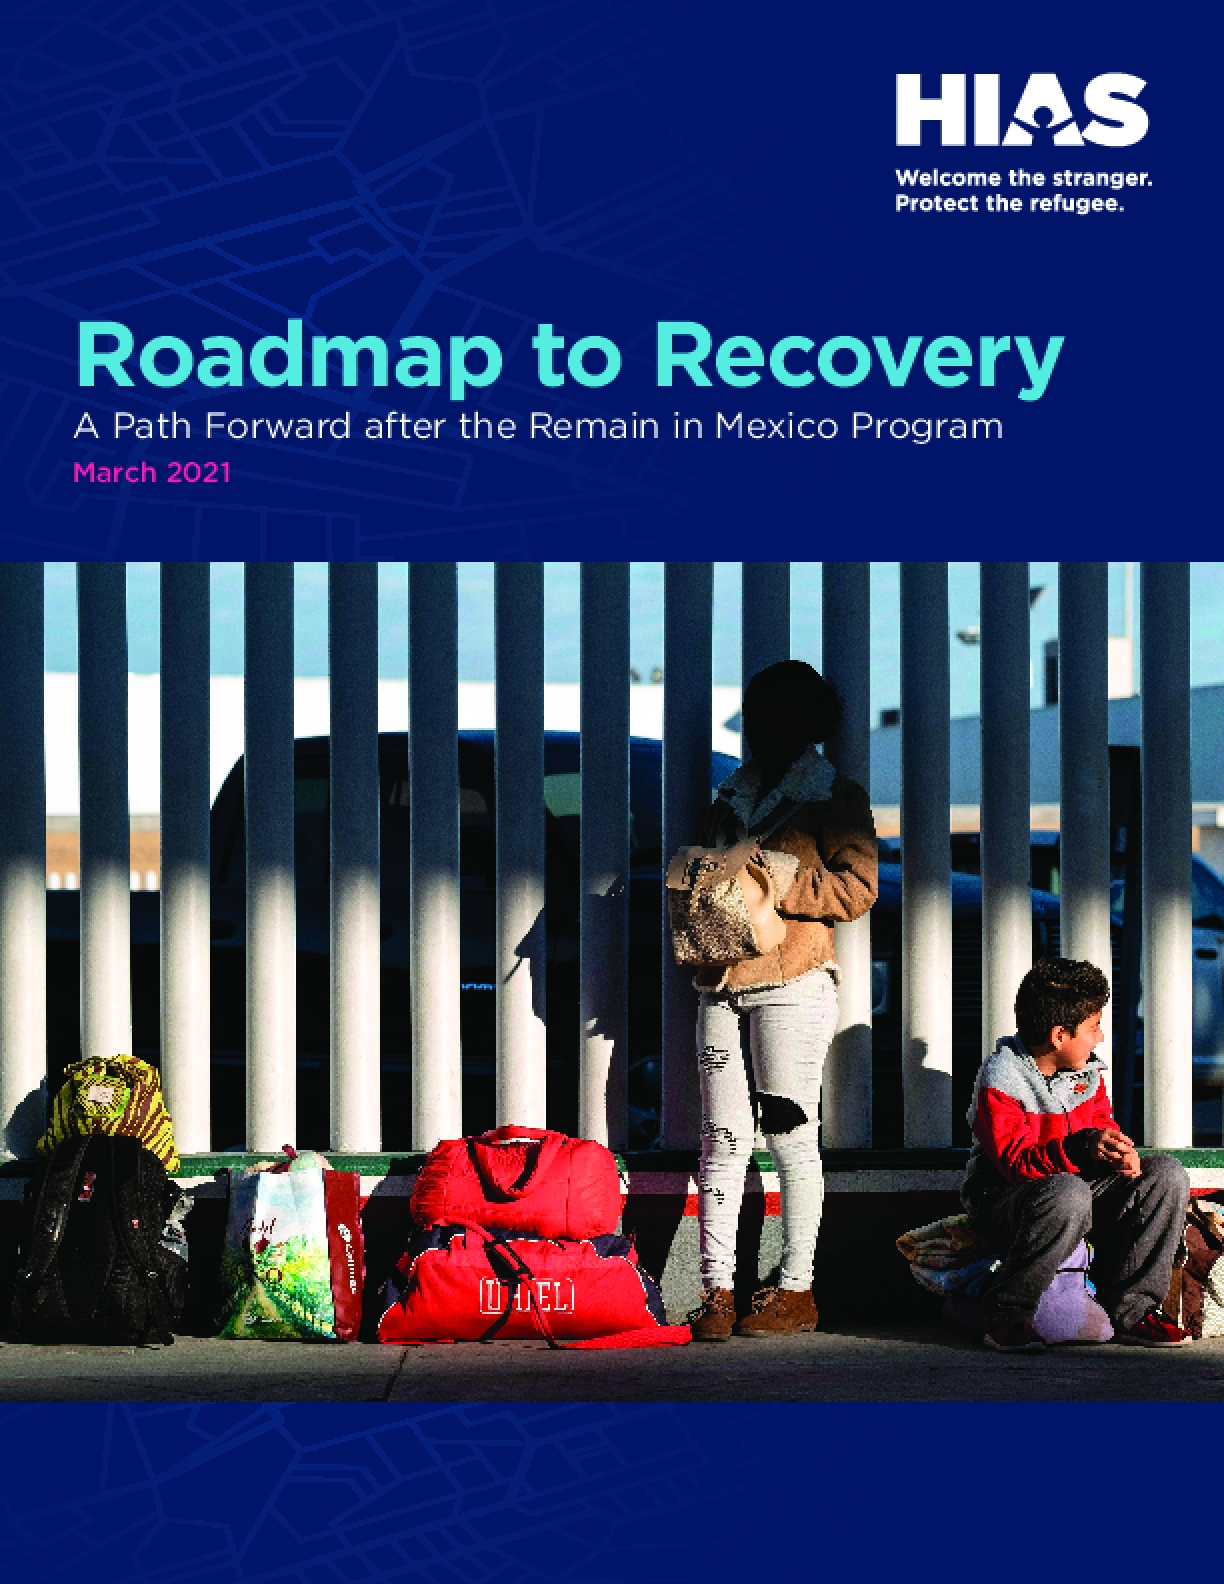 Roadmap to Recovery: A Path Forward after the Remain in Mexico Program